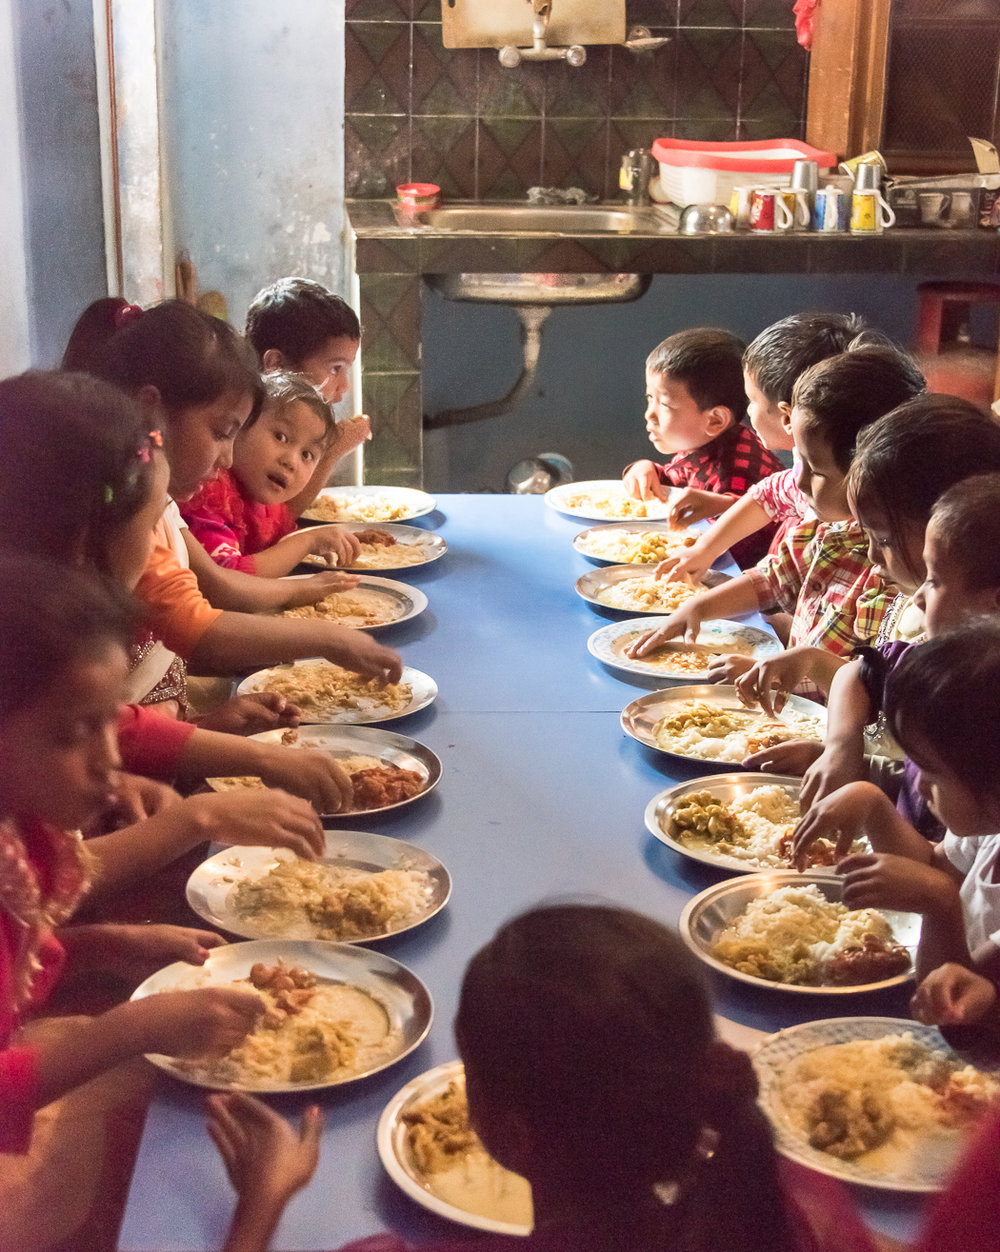 Contact Center kids enjoy their extra daily meal provided by Karma Thalo.